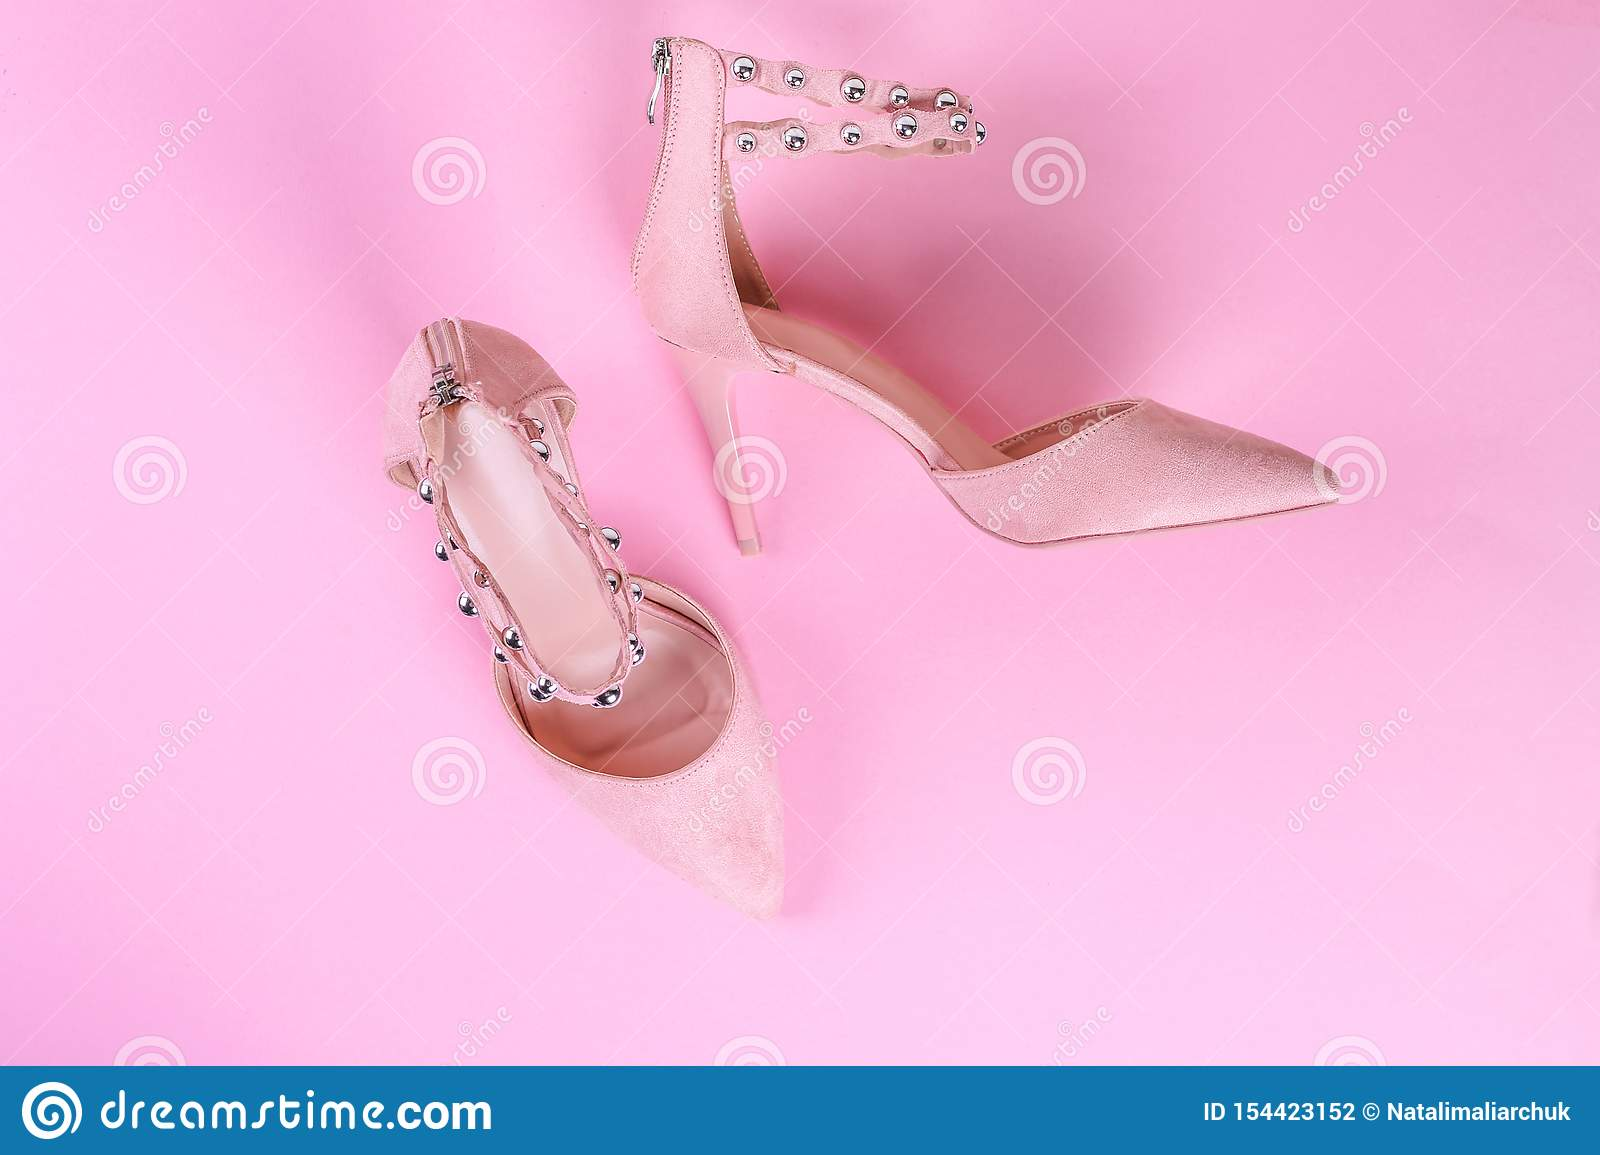 Stylish summer sandals of pastel color isolated on pink background, close up. Top view. Flat lay